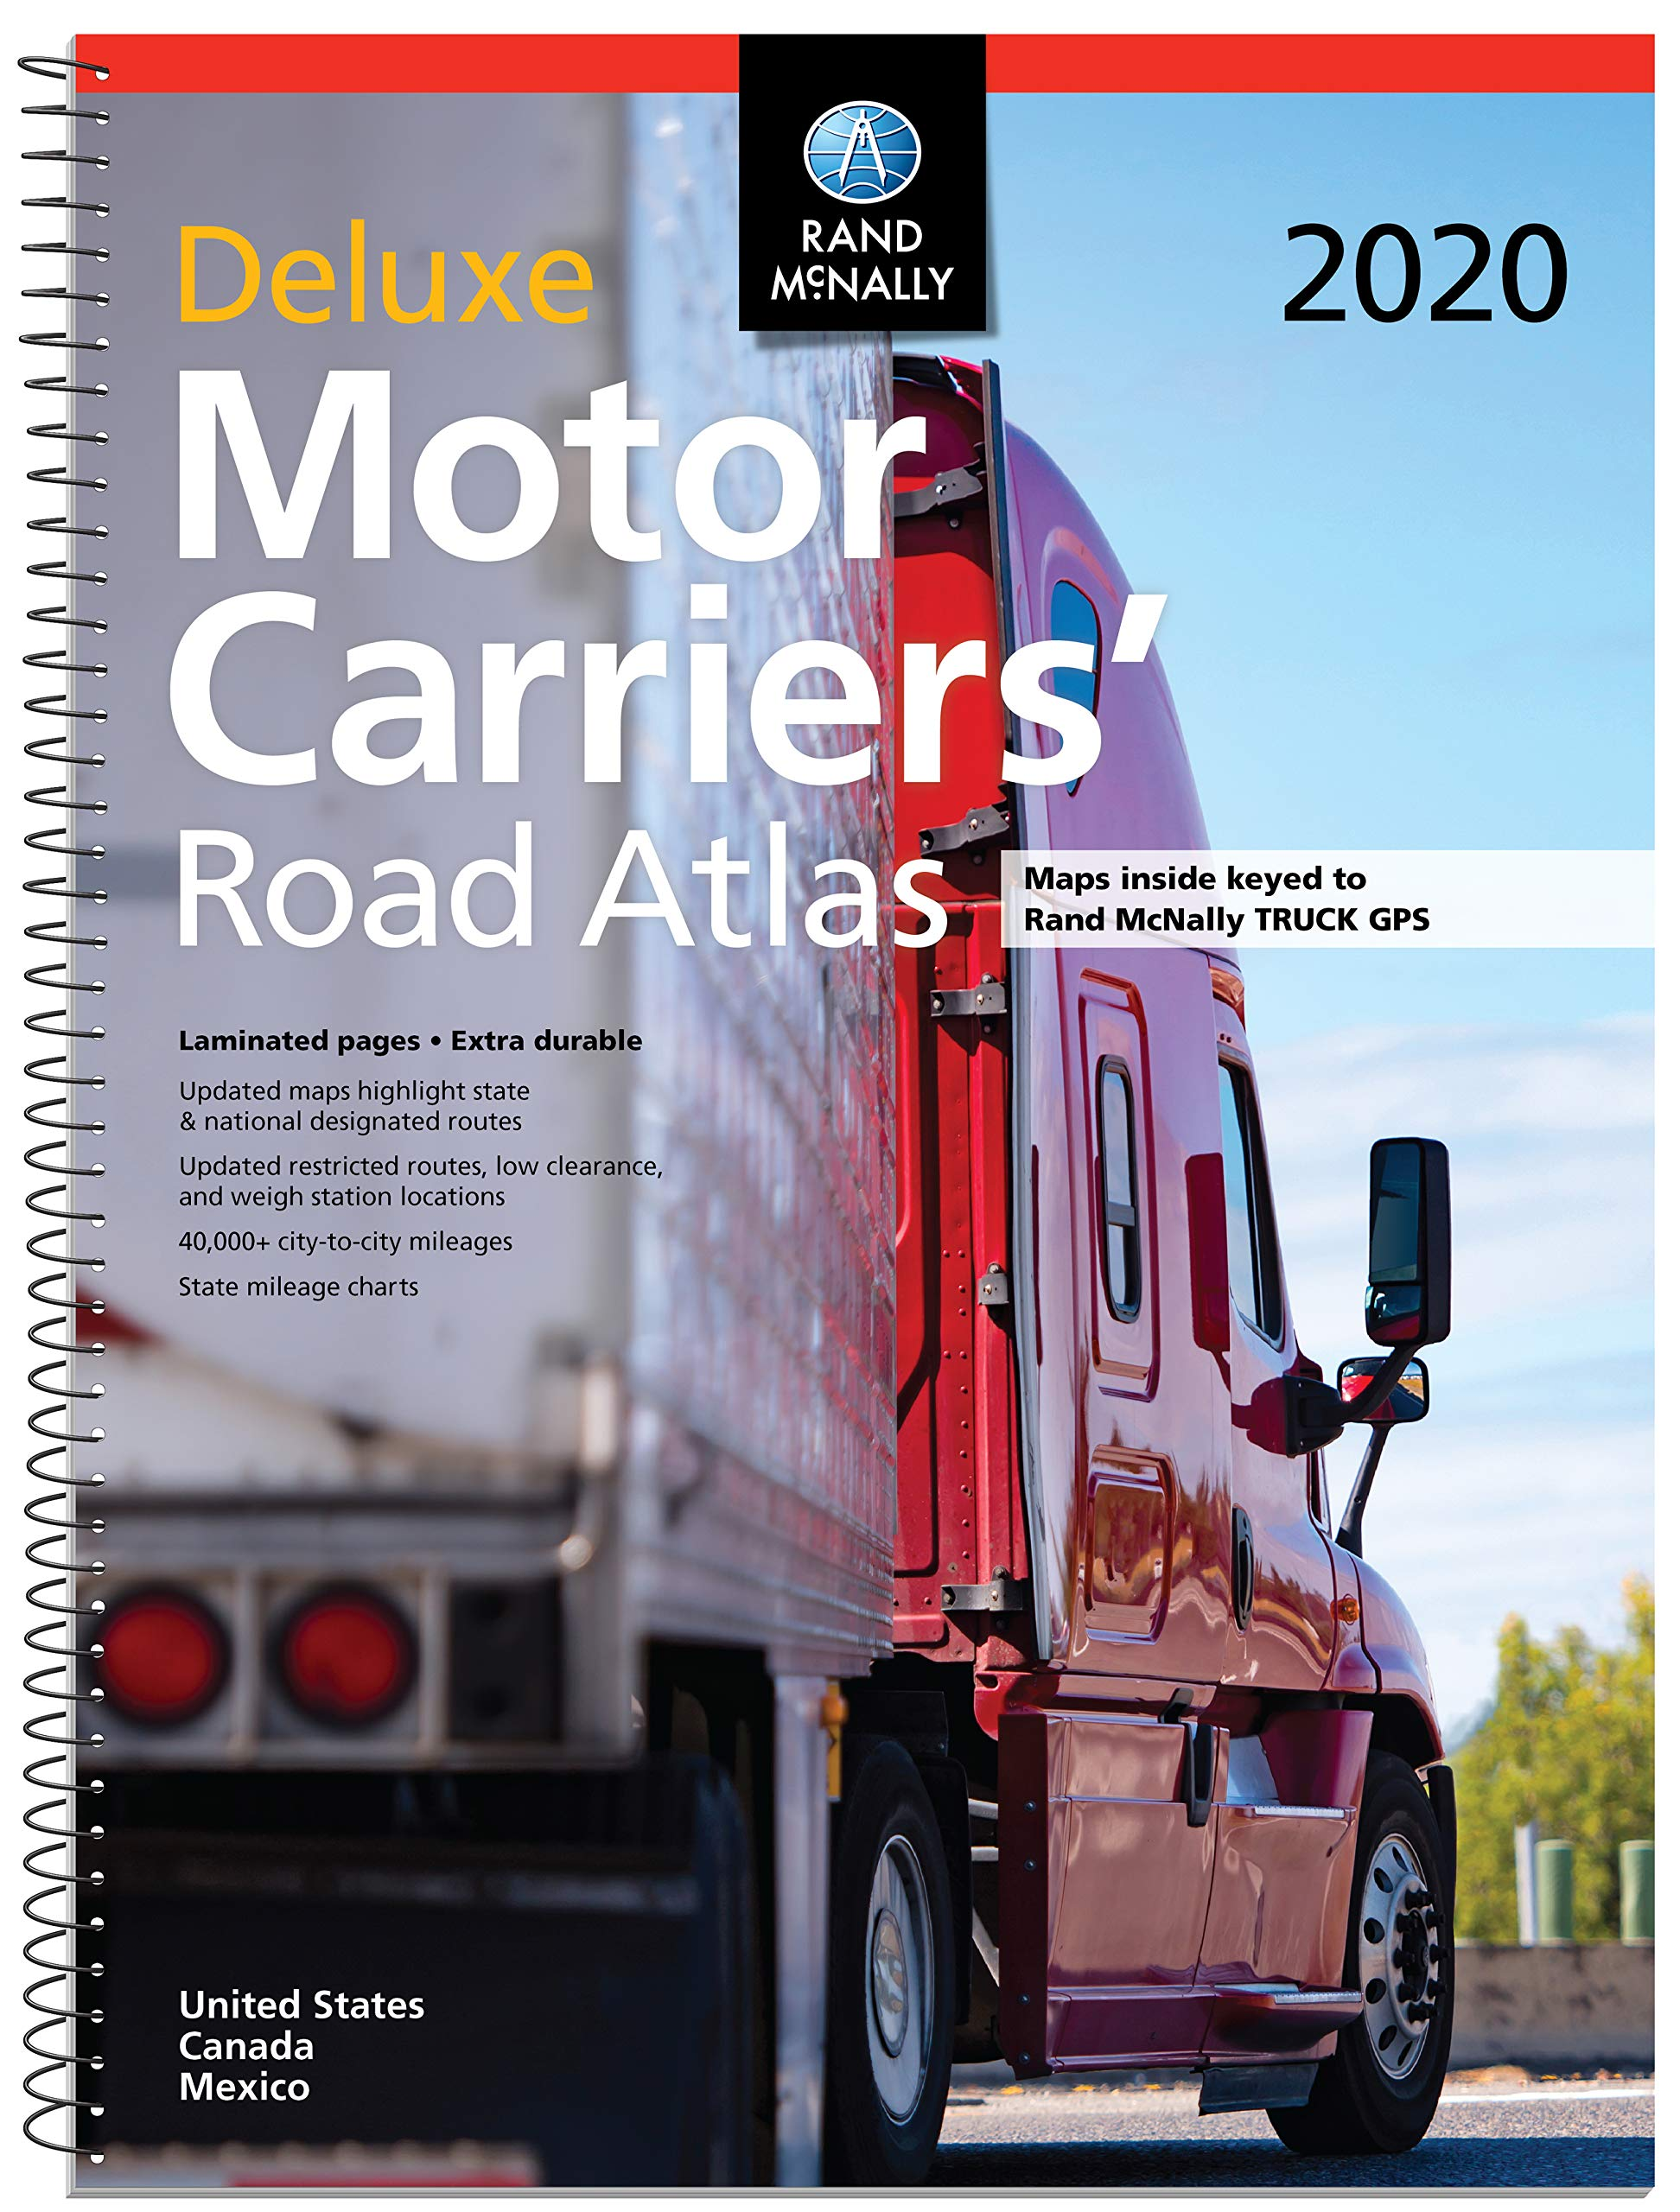 Rand McNally 2020 Deluxe Motor Carriers' Road Atlas by RAND MCNALLY